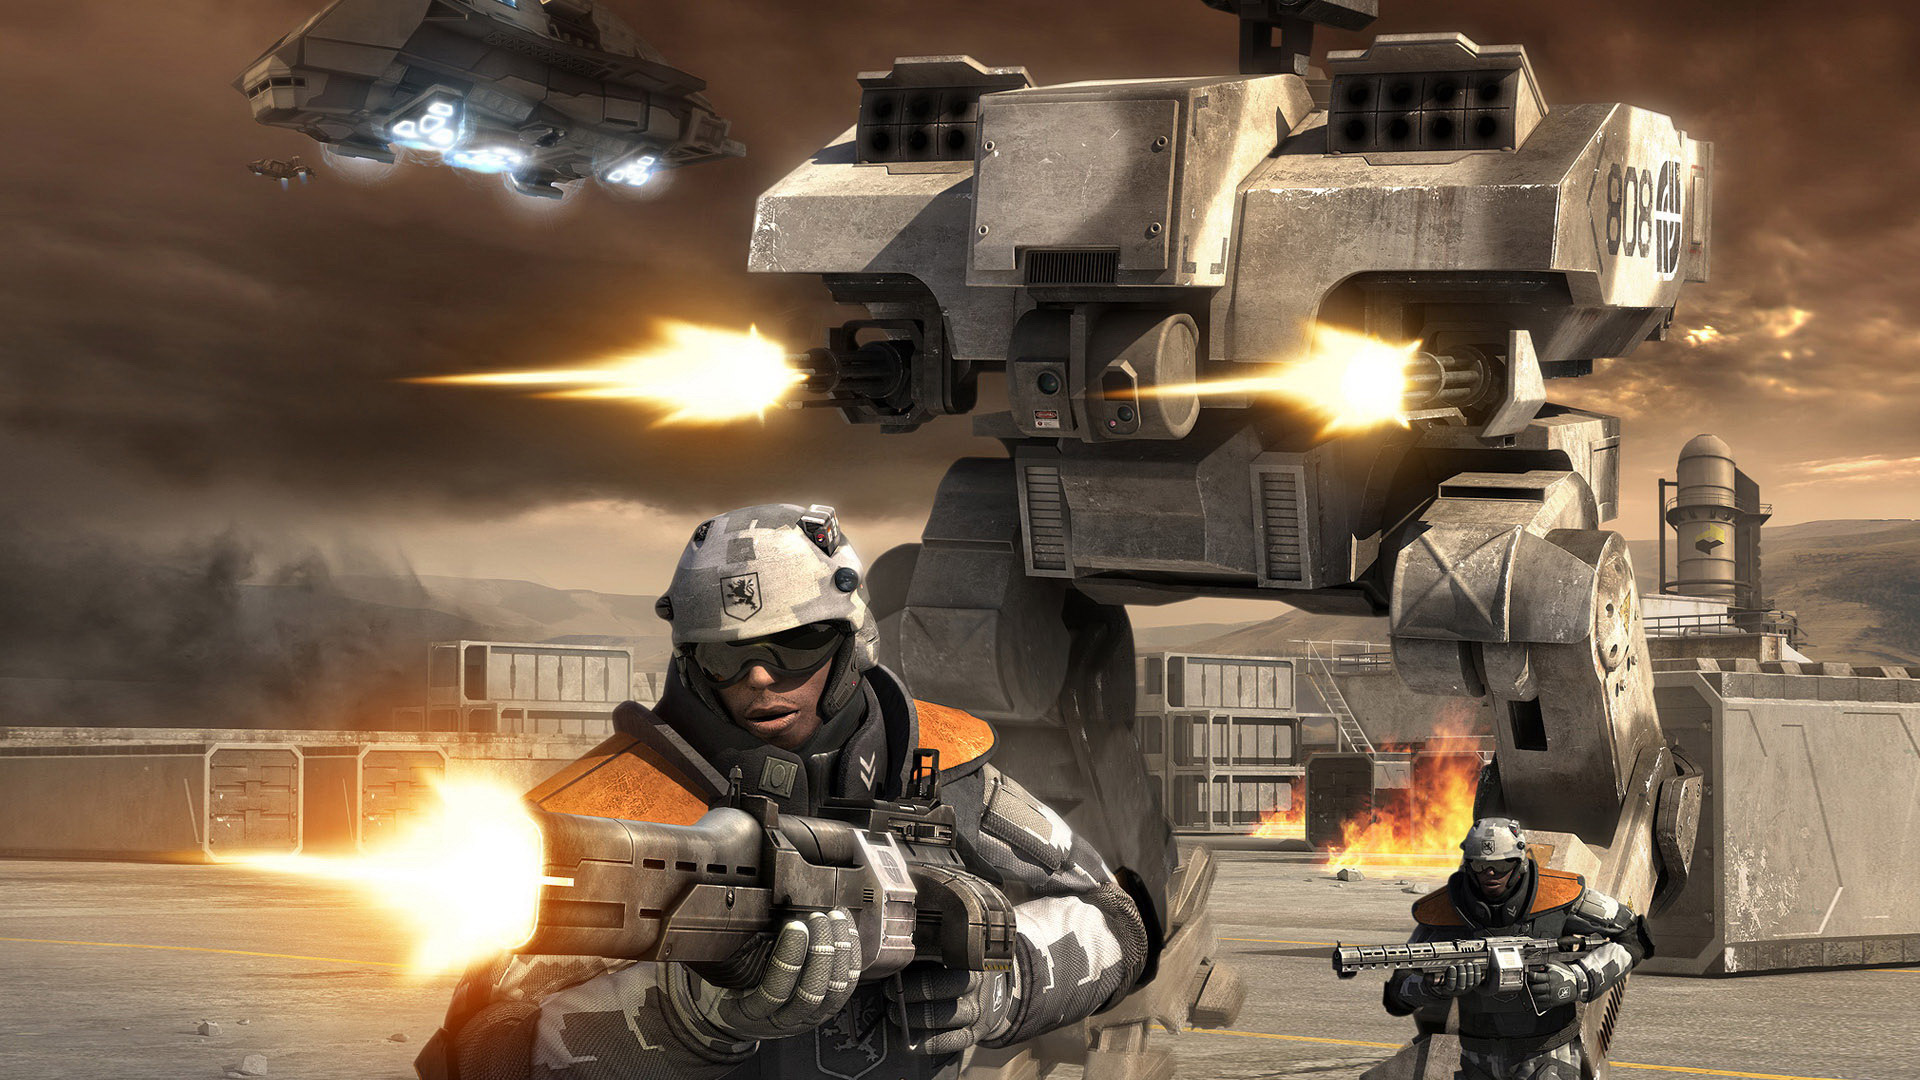 Free Battlefield 2142 Wallpaper in 1920x1080